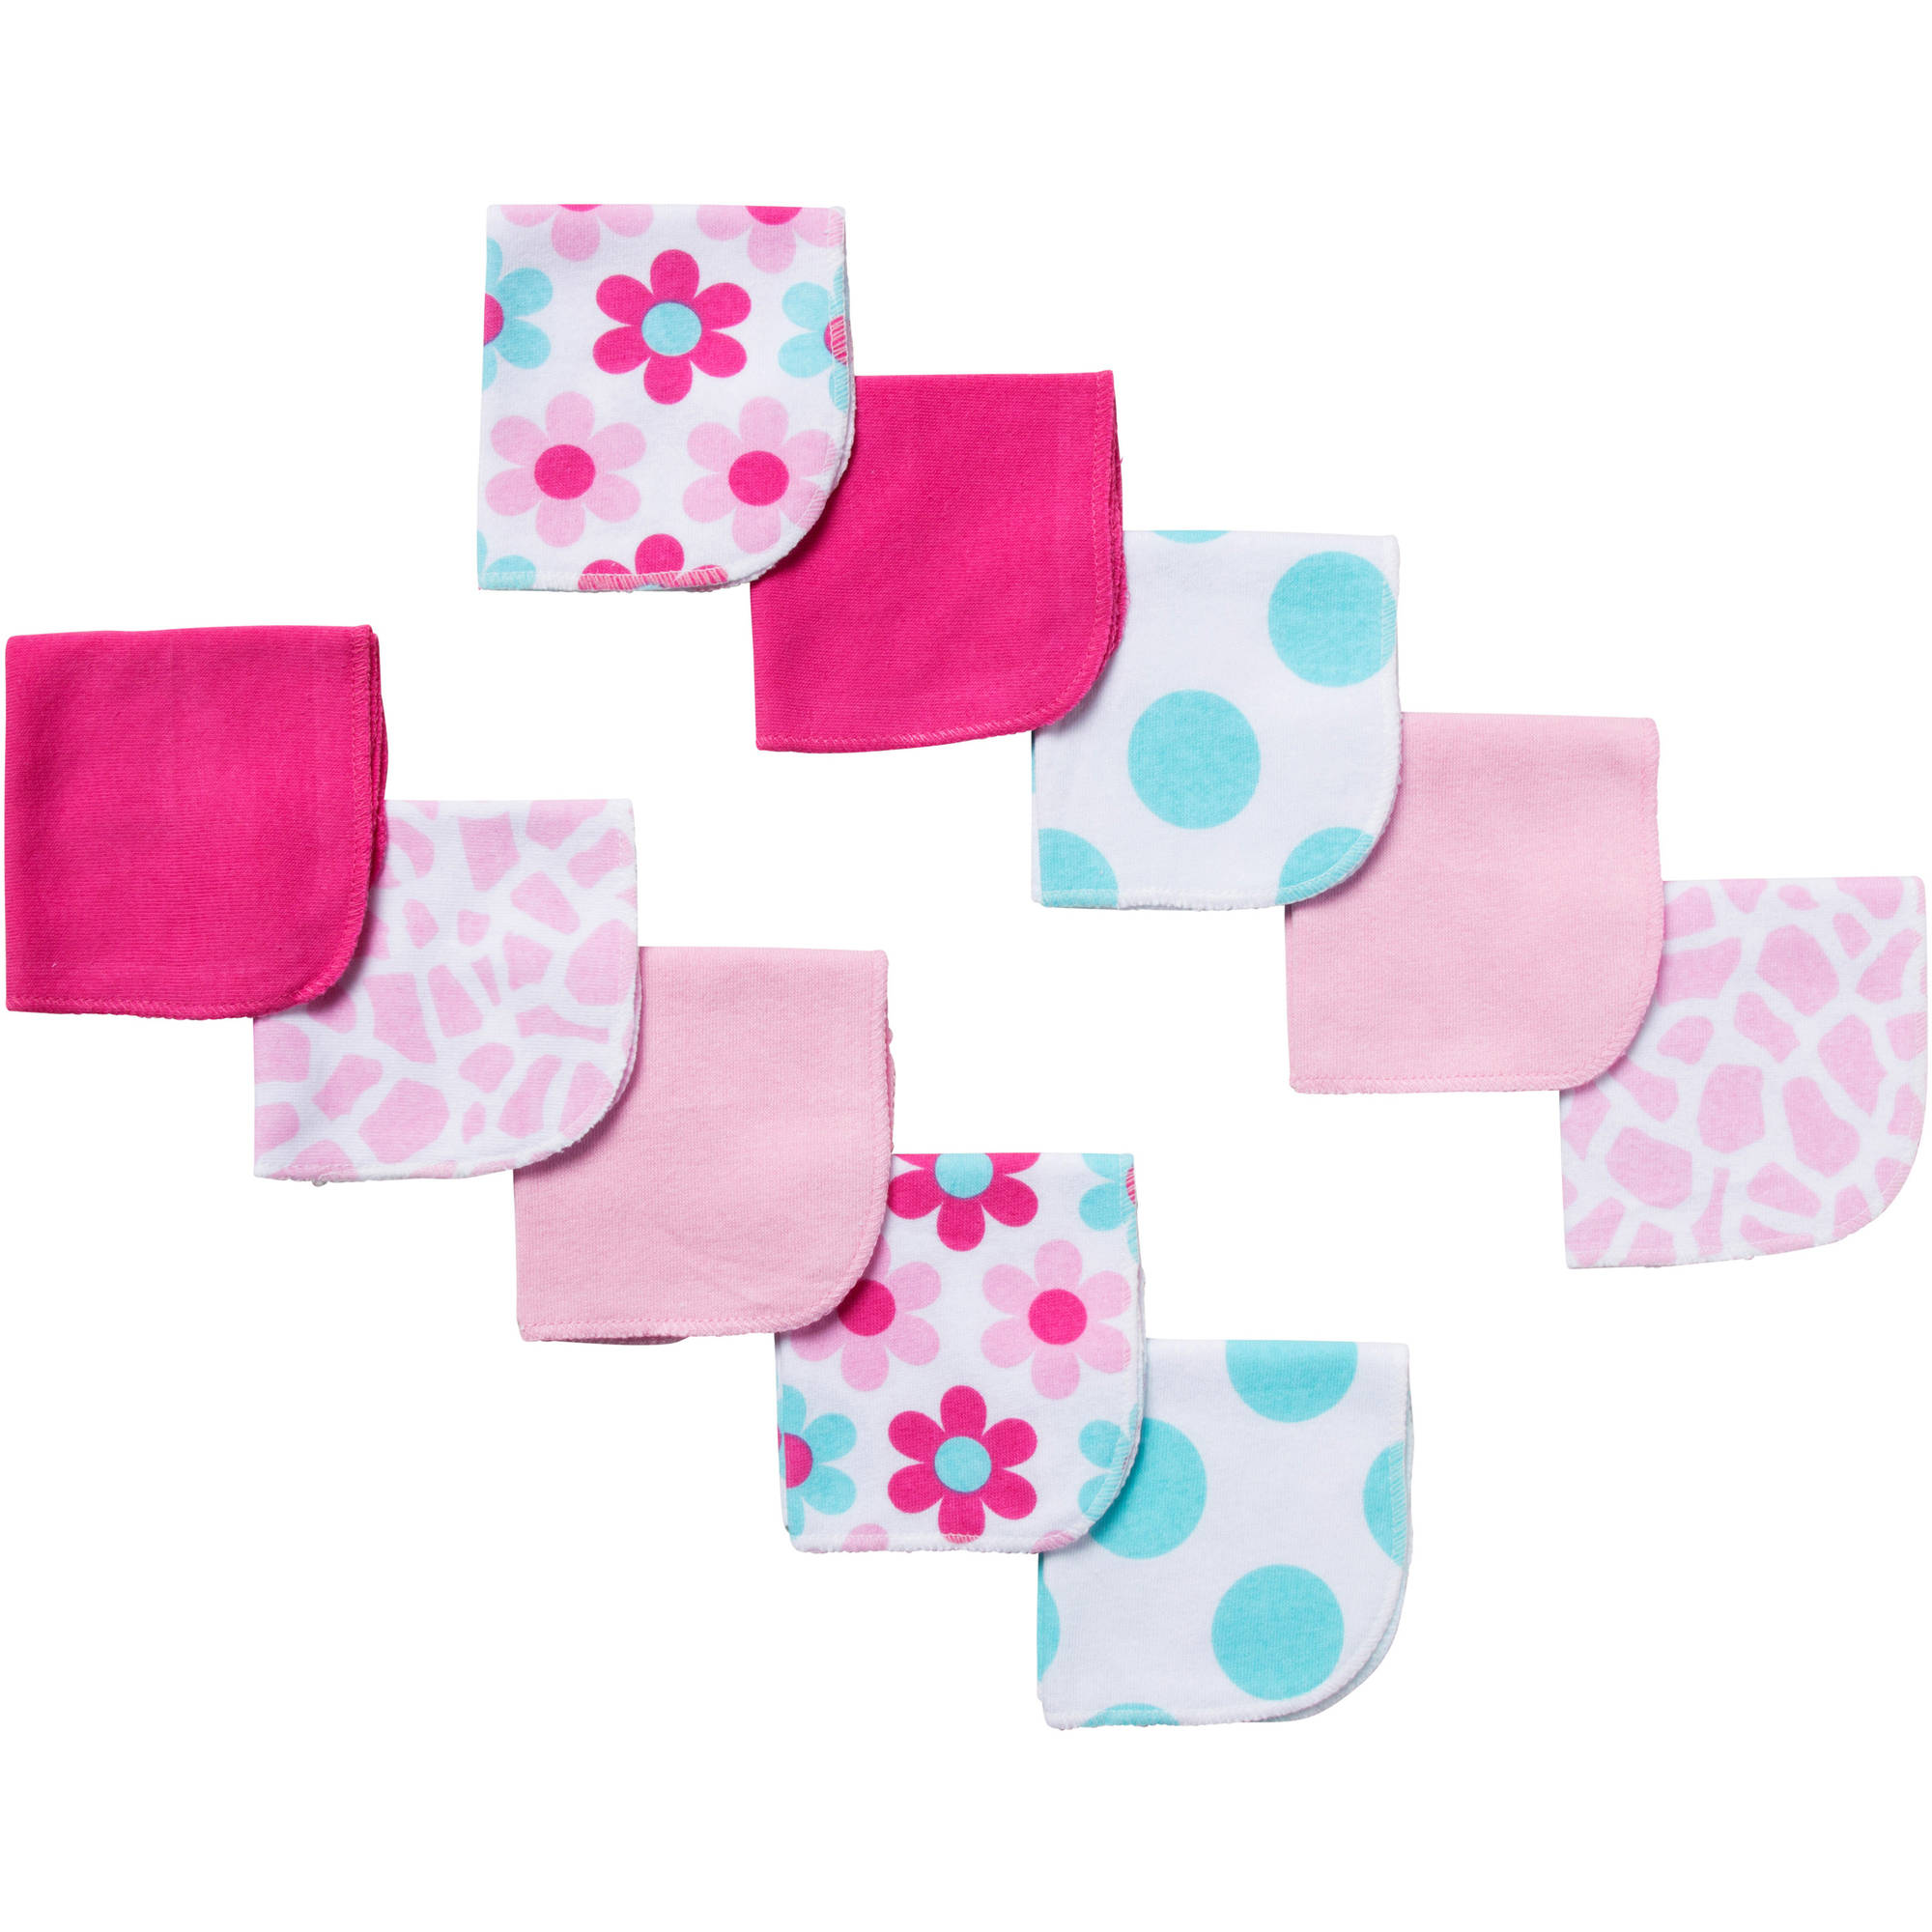 Gerber Newborn Baby Girl Terry Printed Giraffe Washcloths - 10 pack